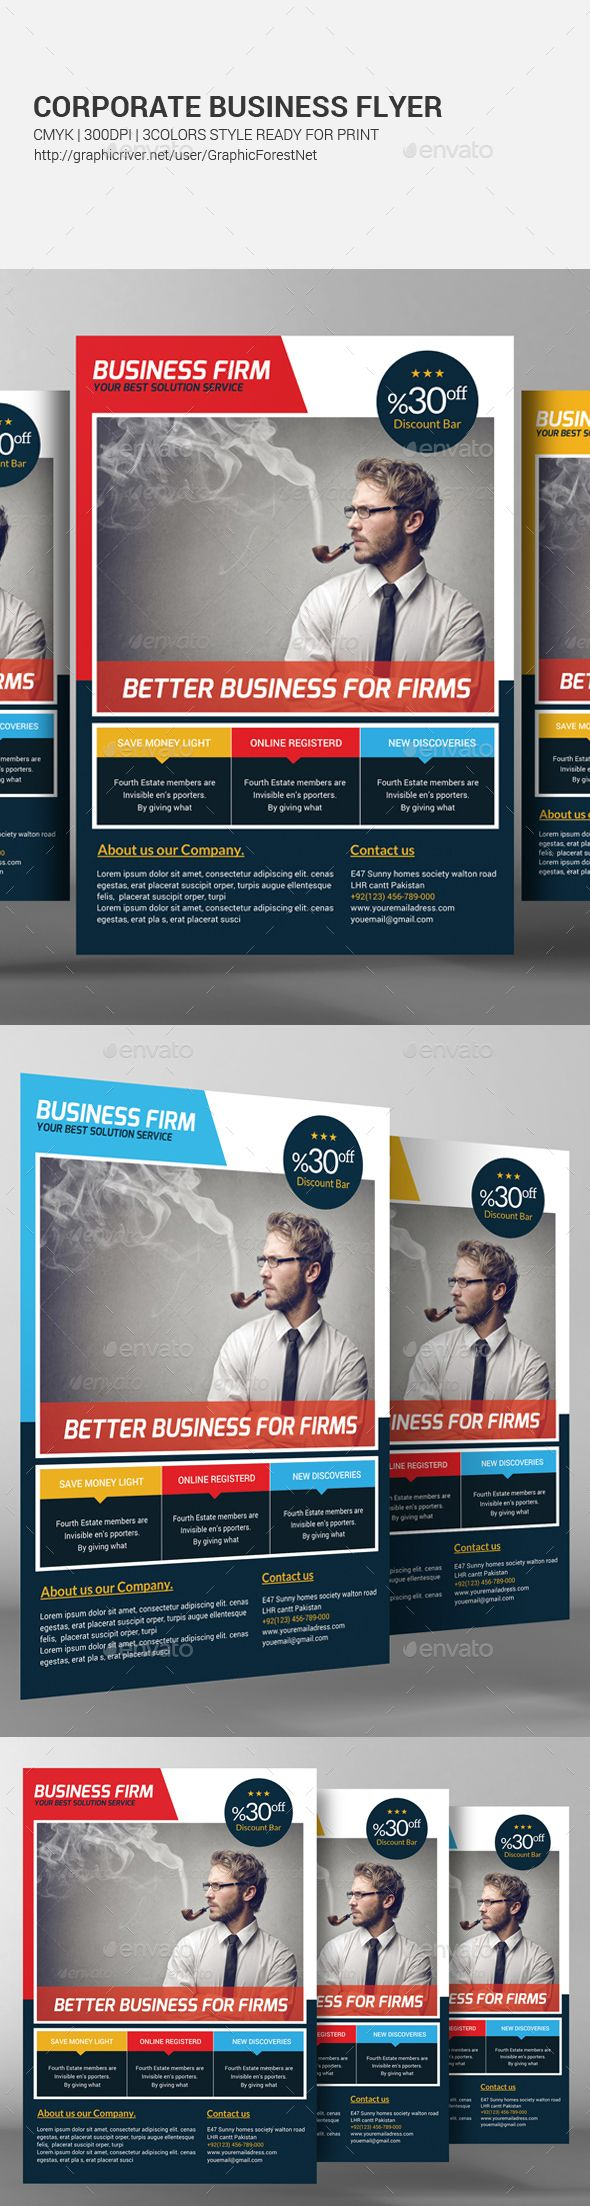 Corporate Agency Flyer Template Template Flyers And Design Templates